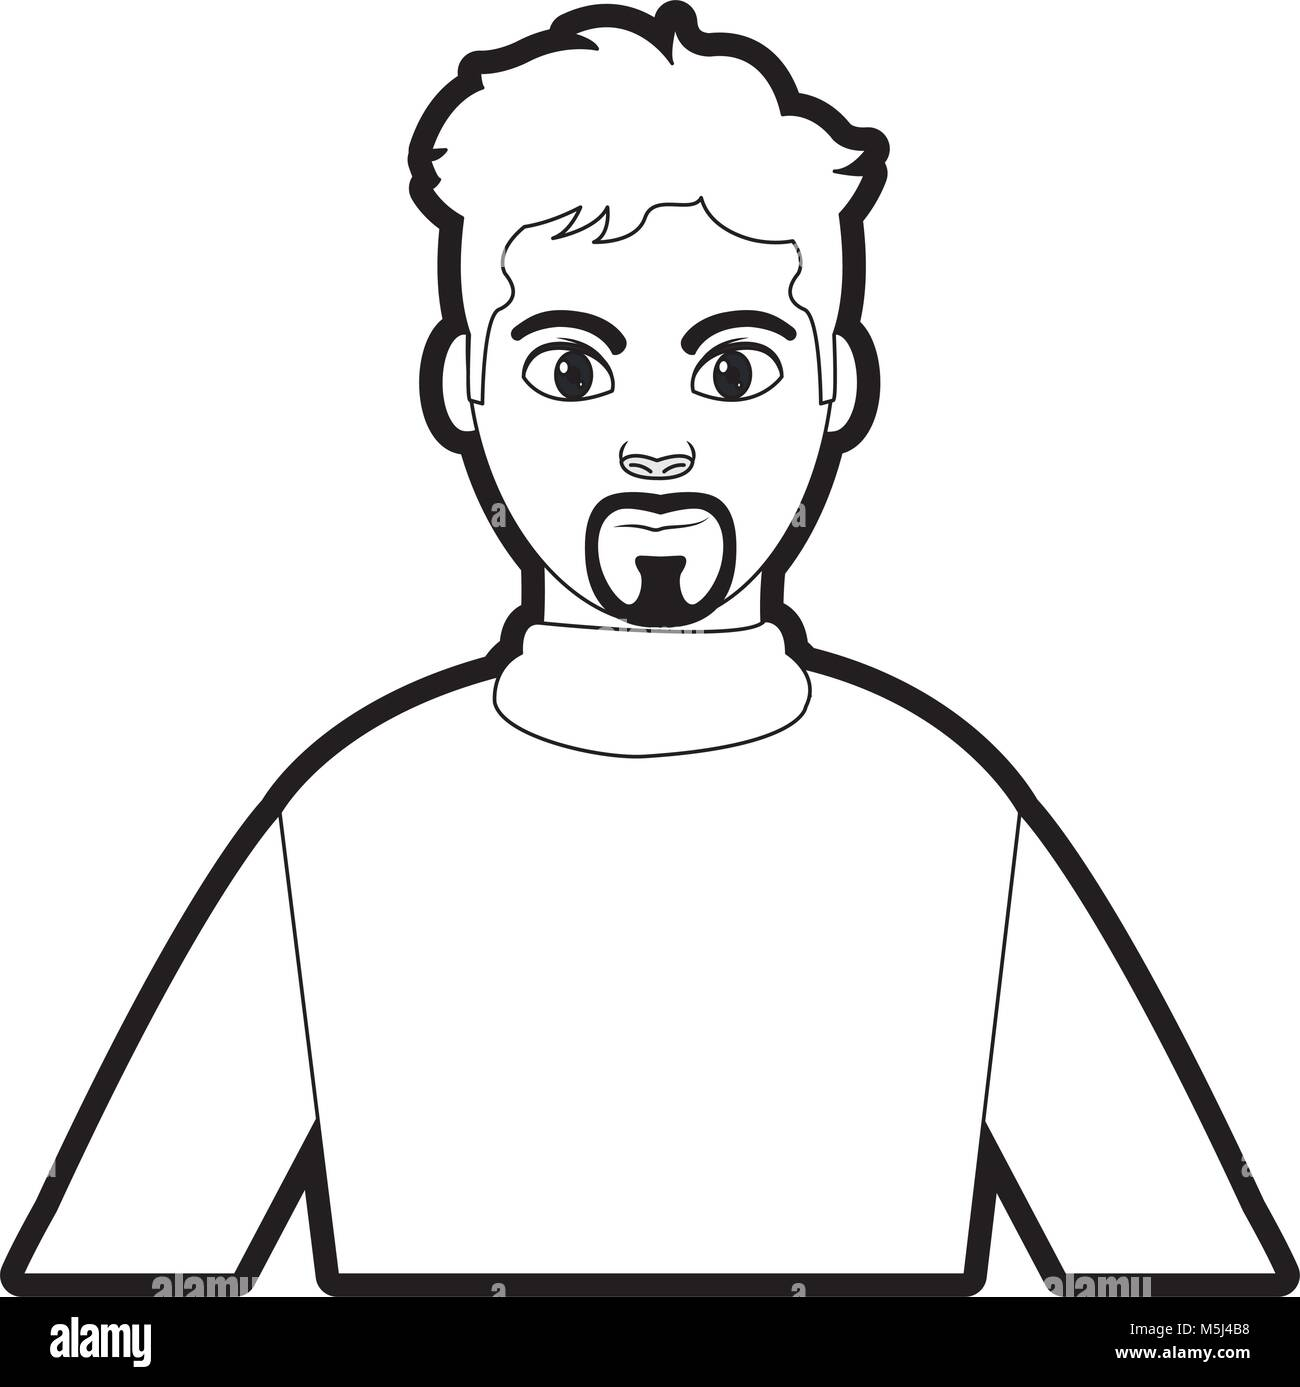 Shirt Design Outline | Outline Avatar Man With Shirt Design And Hairstyle Vector Stock